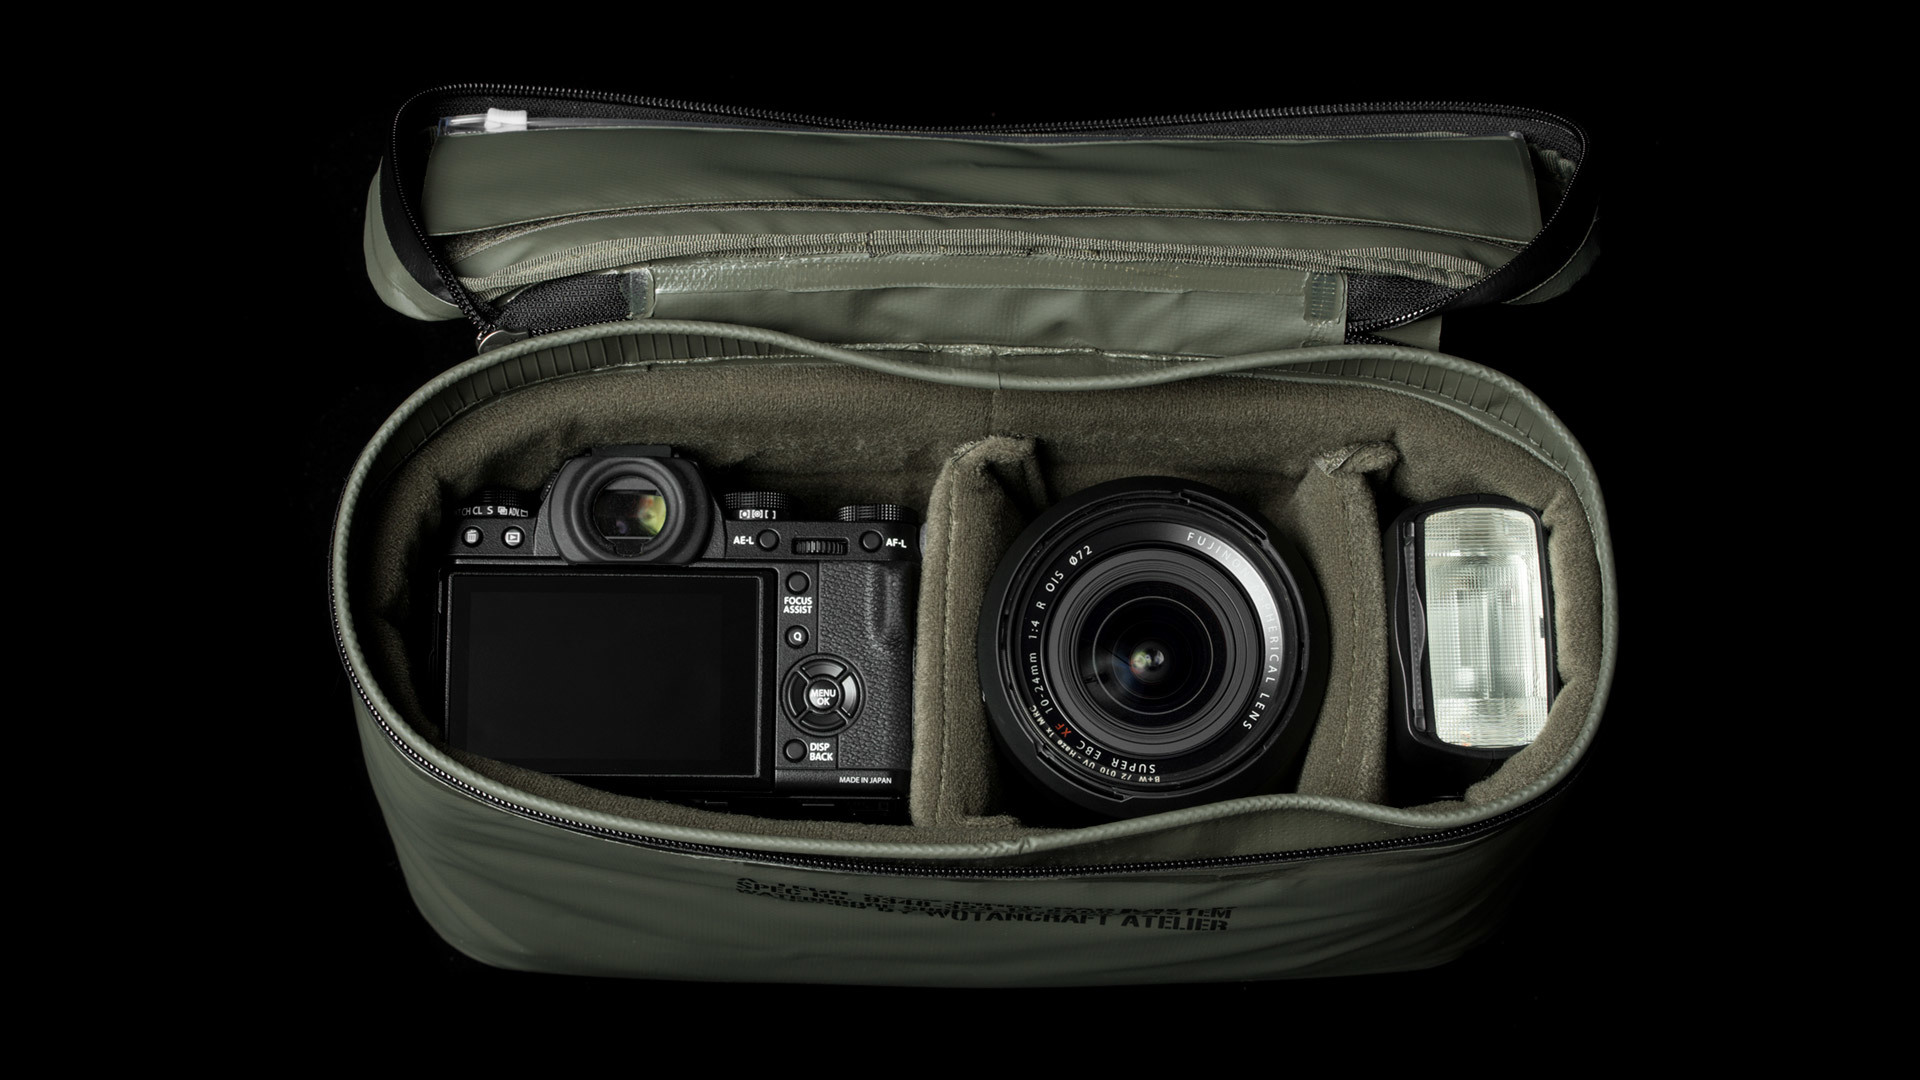 Waterproof Camera Insert L Size Handmade Camera Bags Backpacks Daily Bags Watch Straps Wotancraft